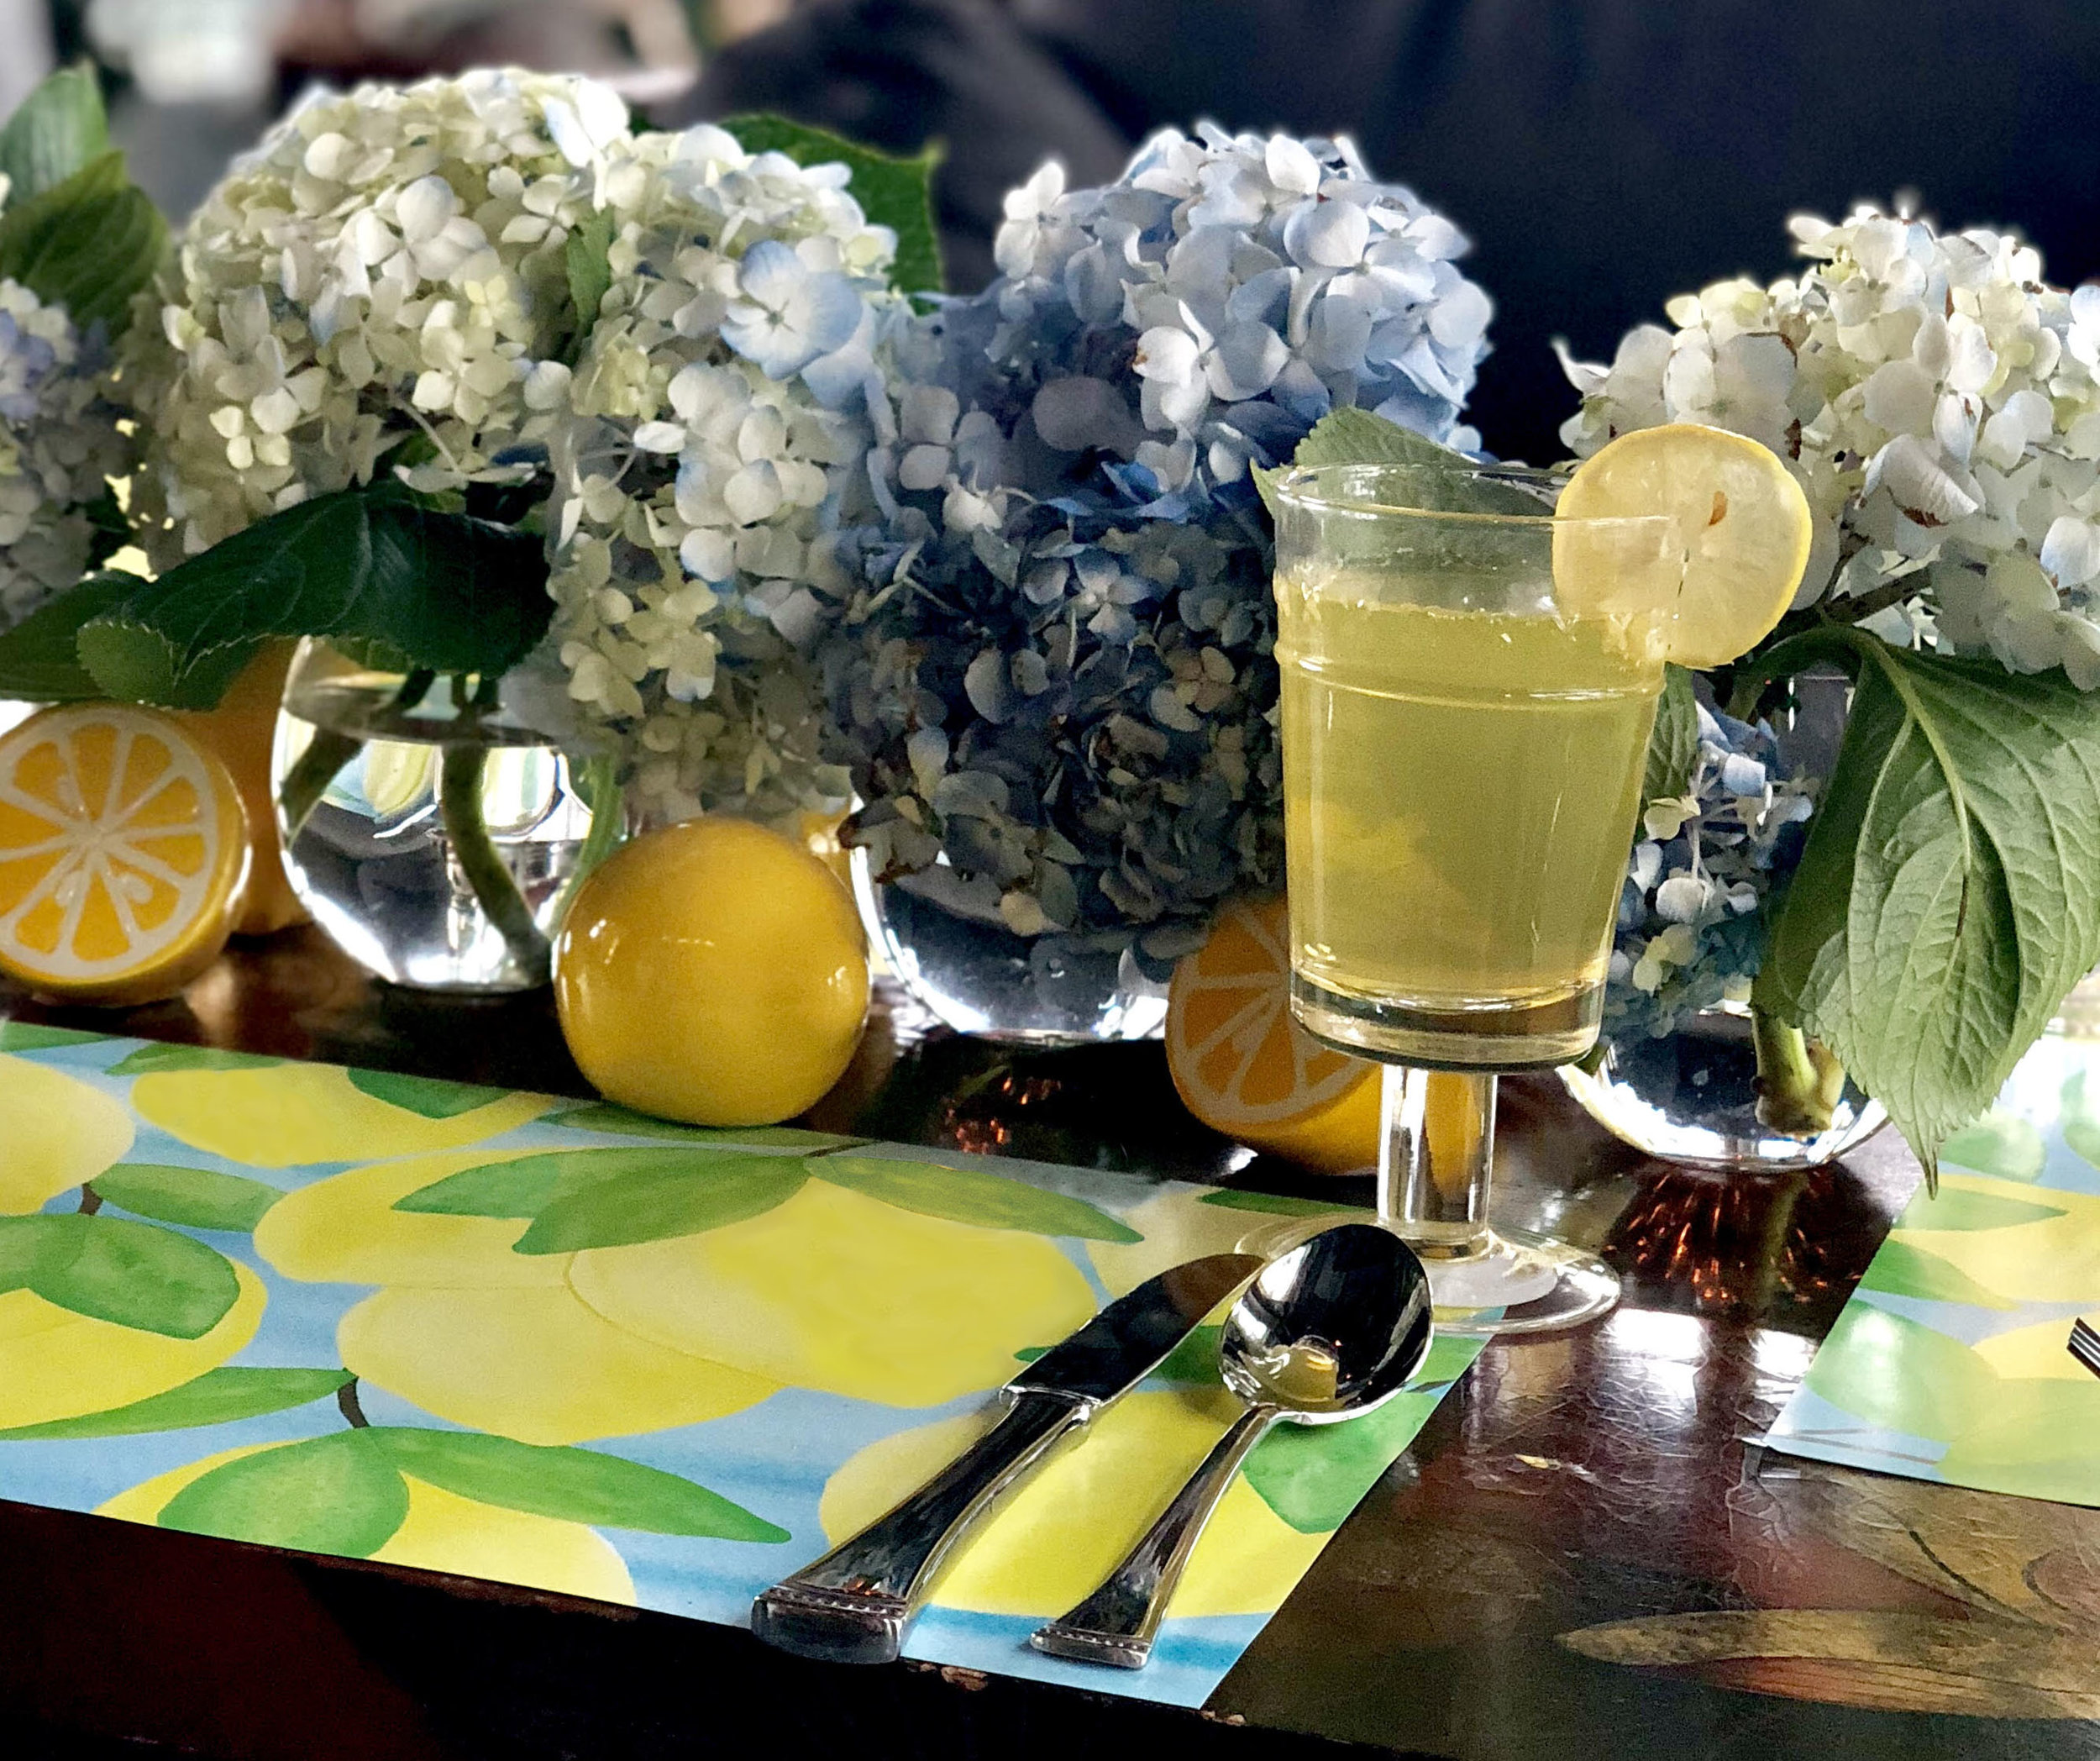 lucy-grymes-blog-summer-citrus-party.jpg